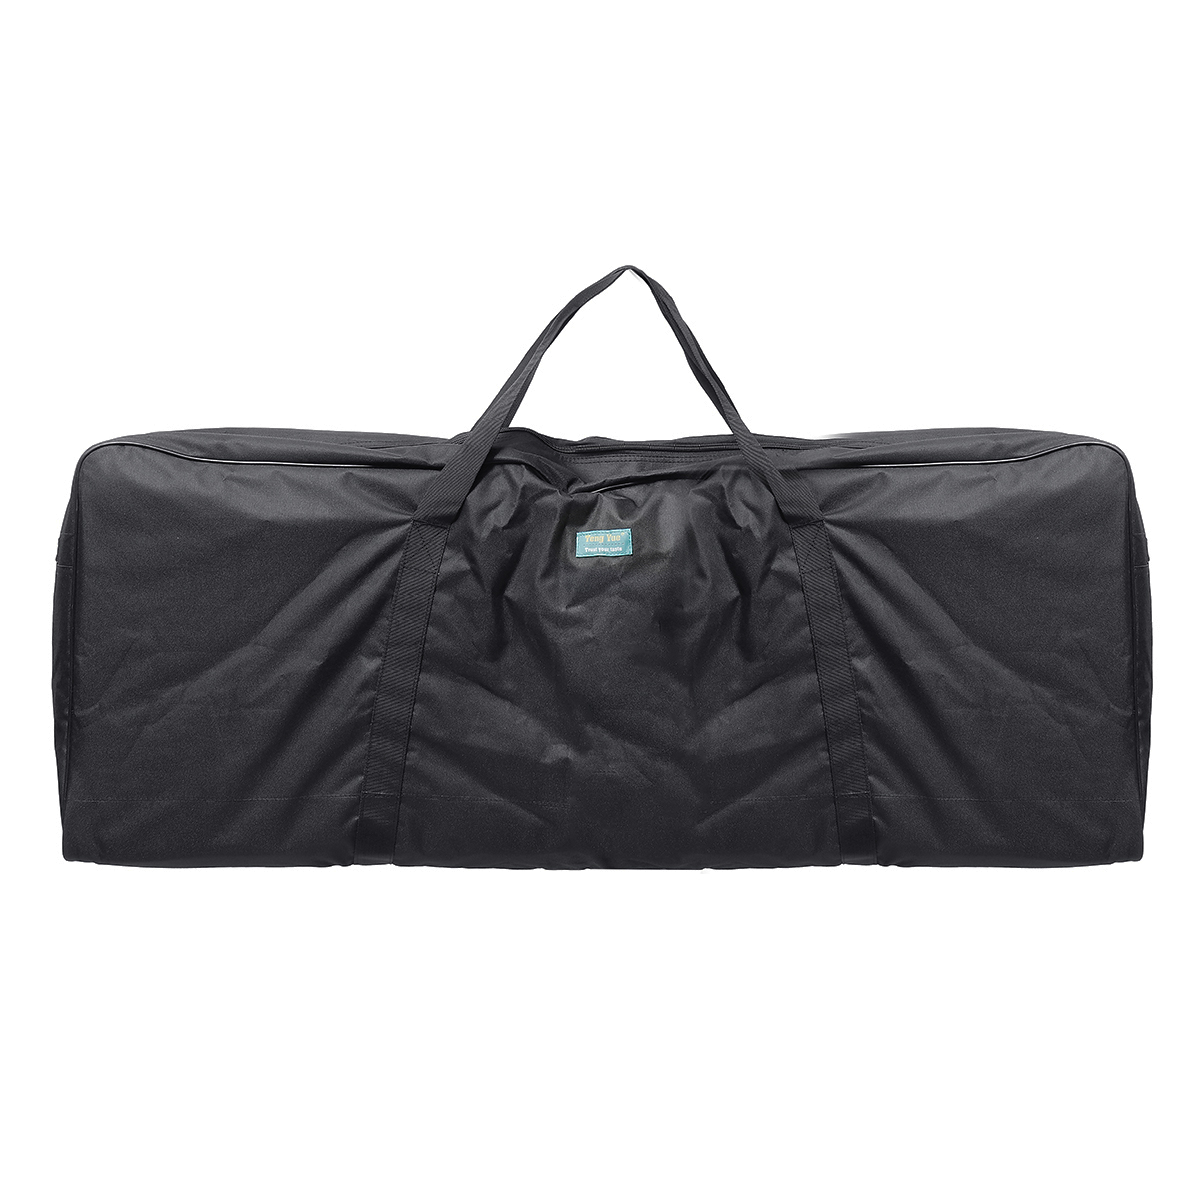 105x18x38cm Portable Carry Hand Bag Storage Case For E-